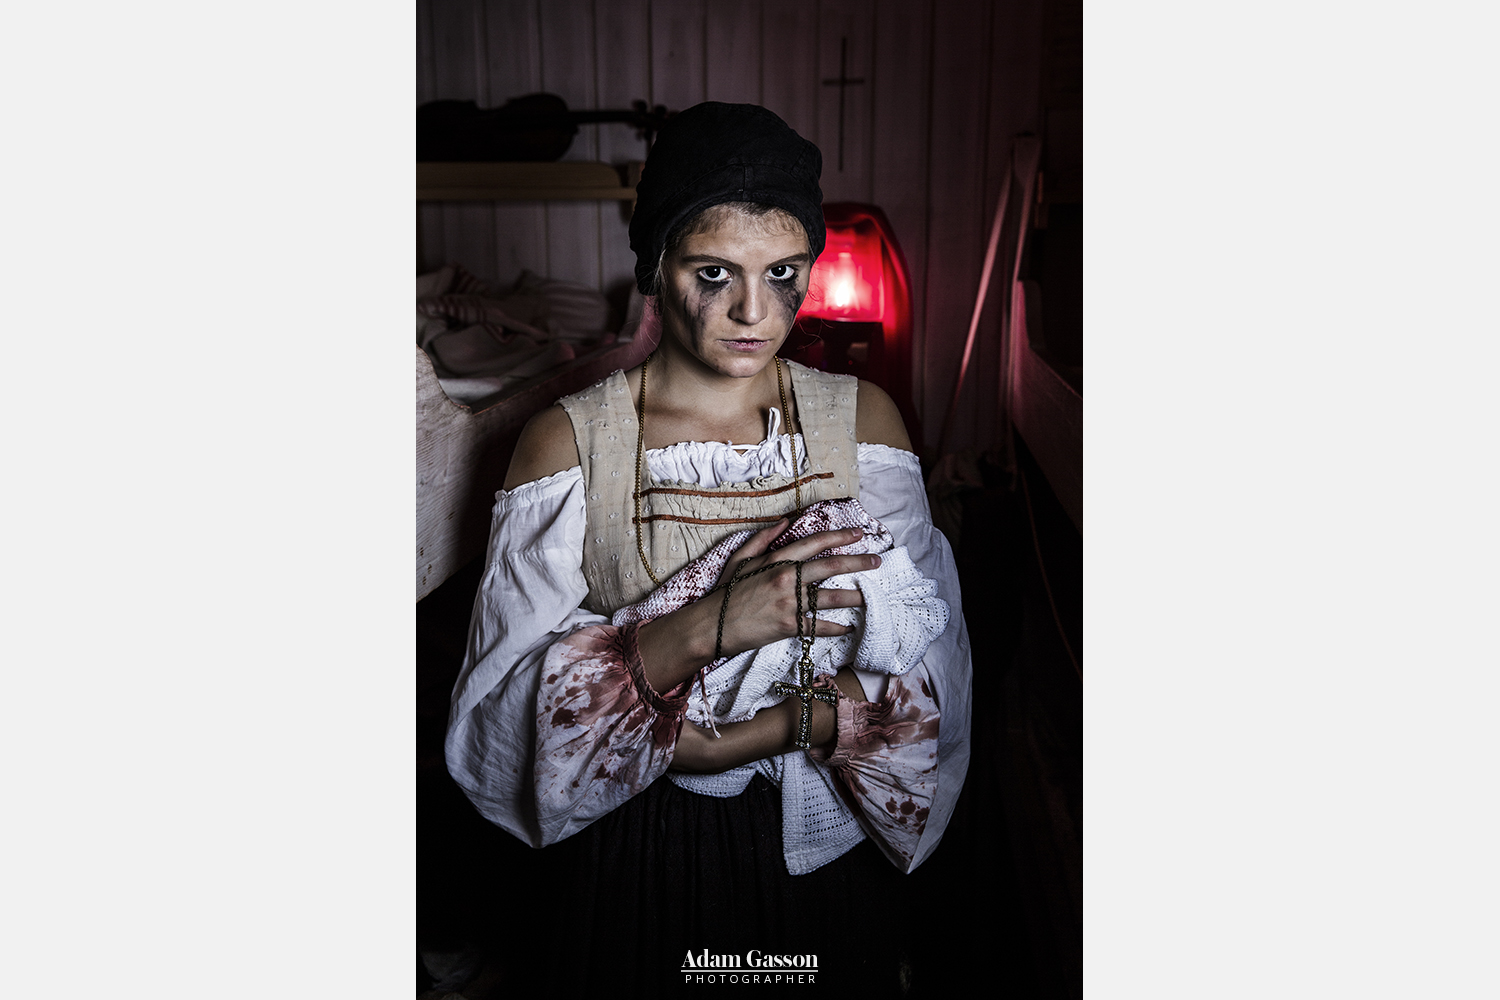 ss Great Britain Halloween photos